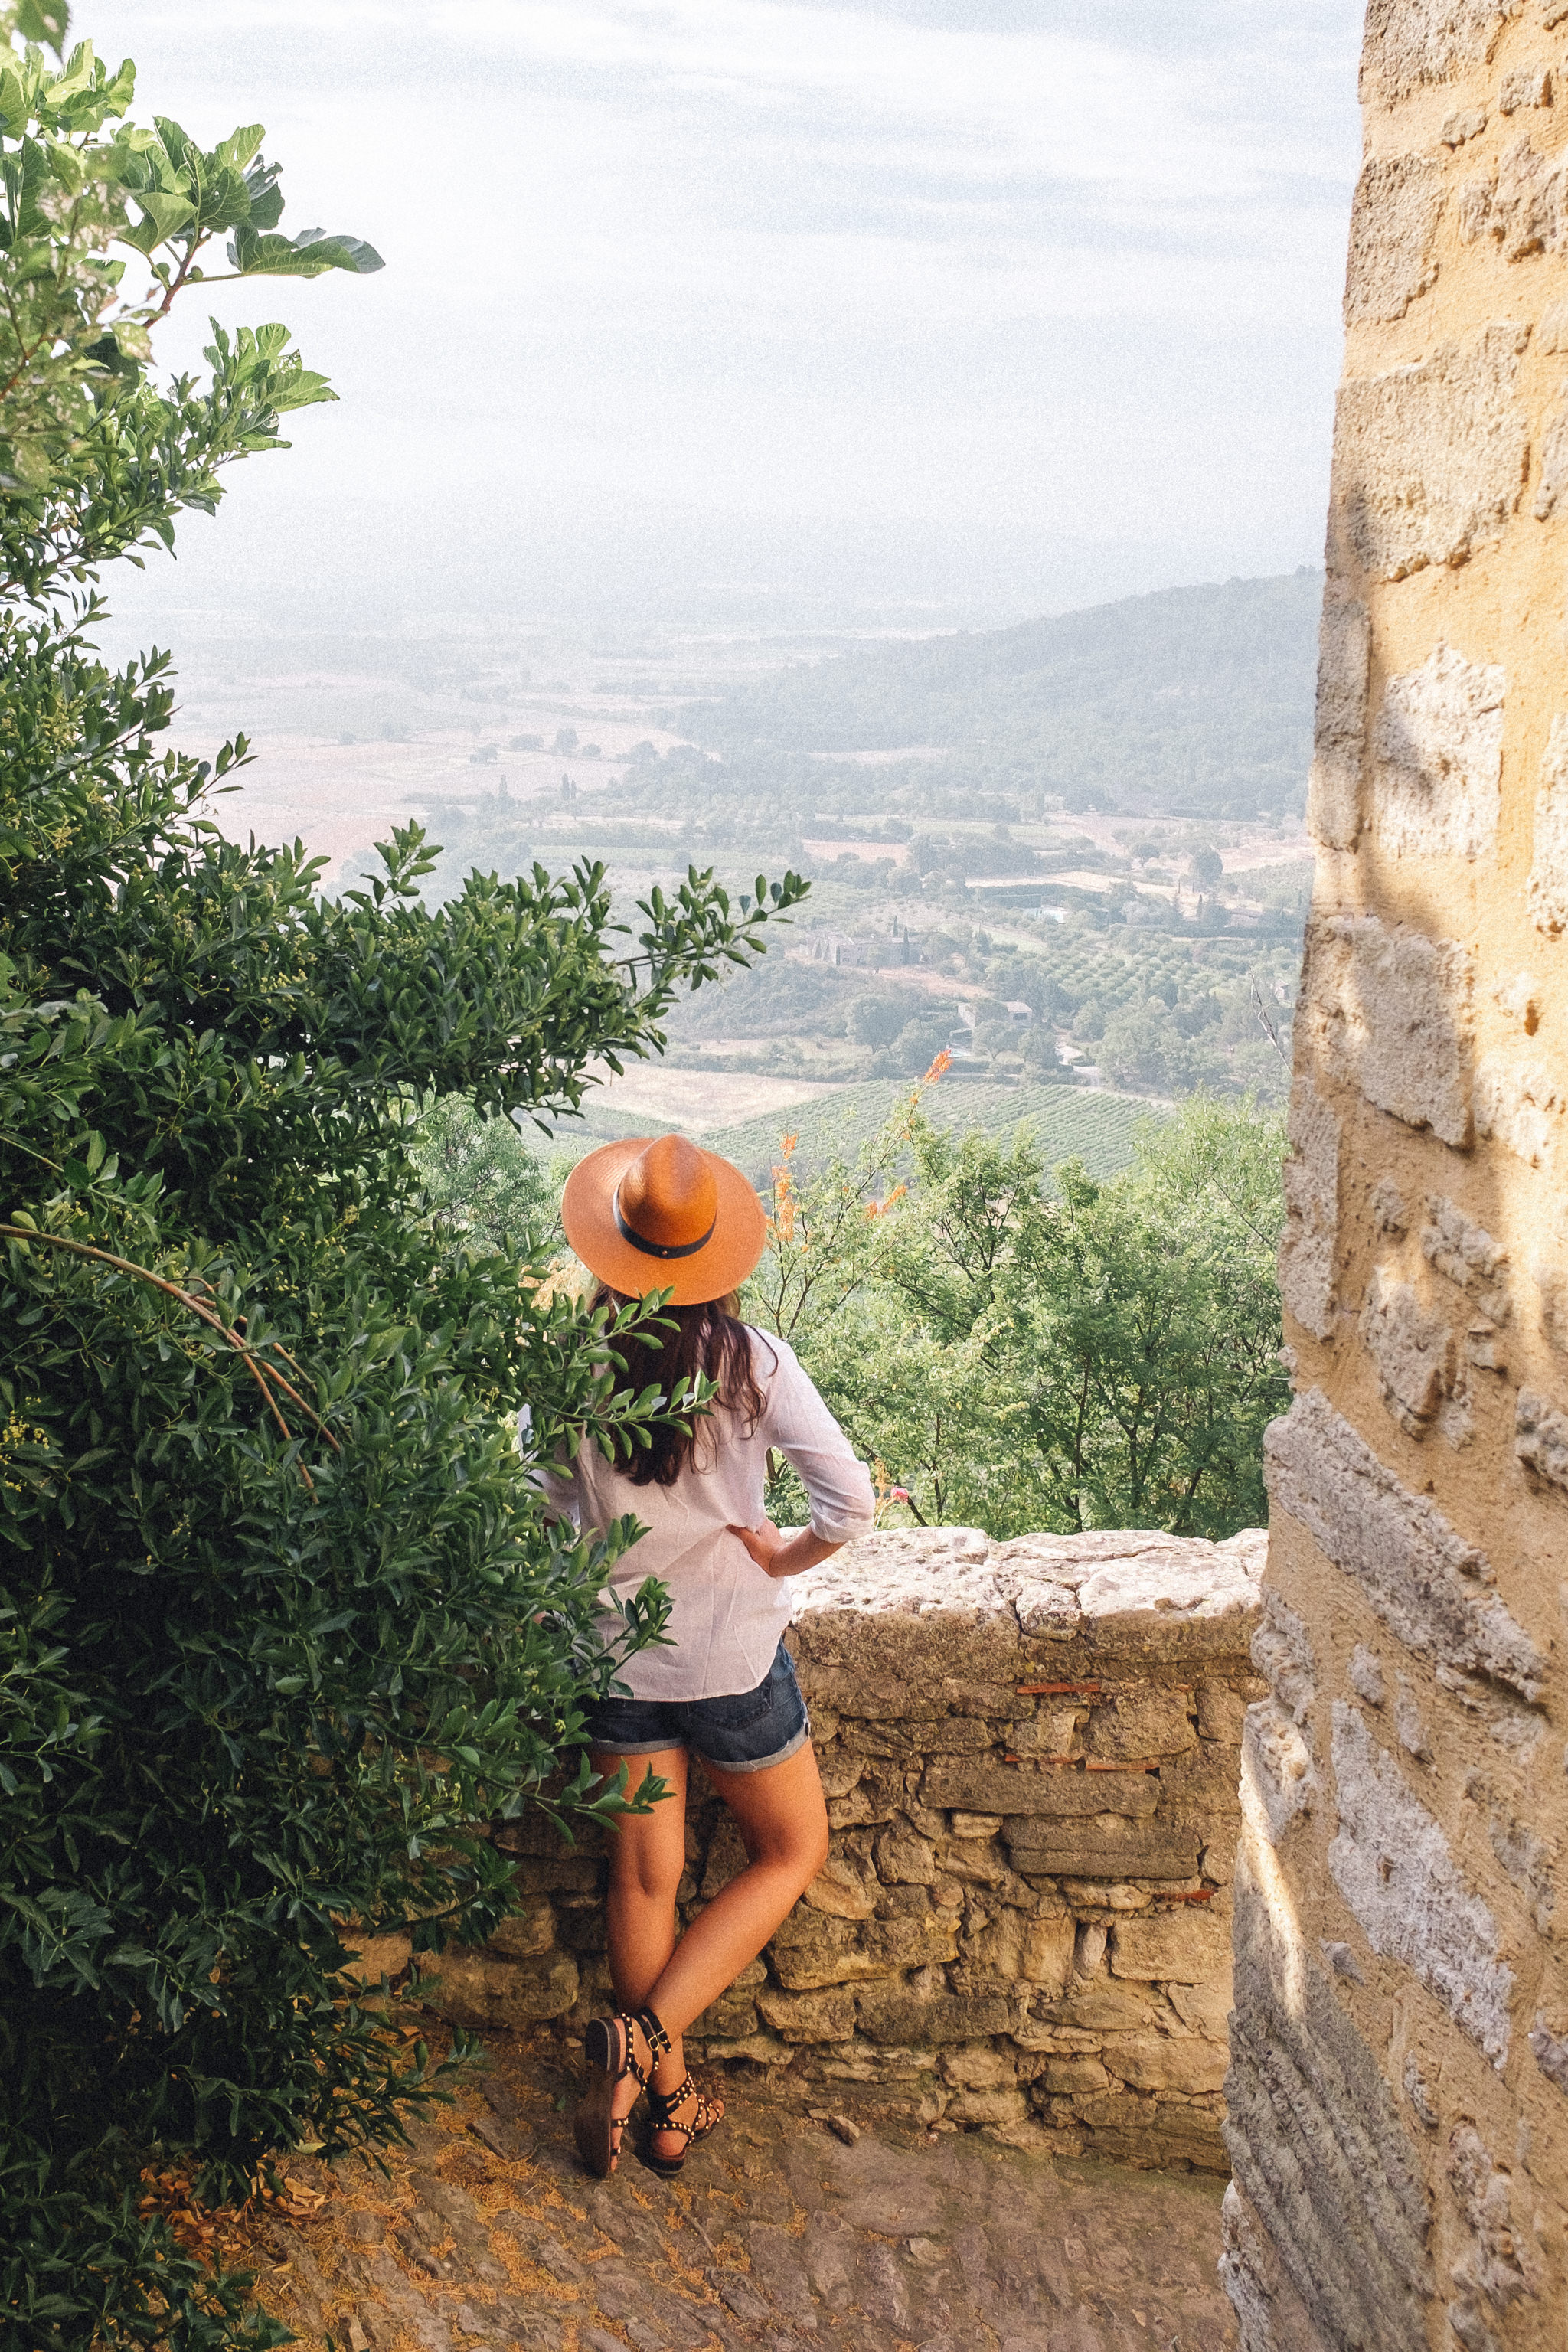 The Overwhelming Task of Learning a New Language - She's So Bright, Paris, South of France, Gordes, Straw Hat, Panama, Travel, Beauty, Provence